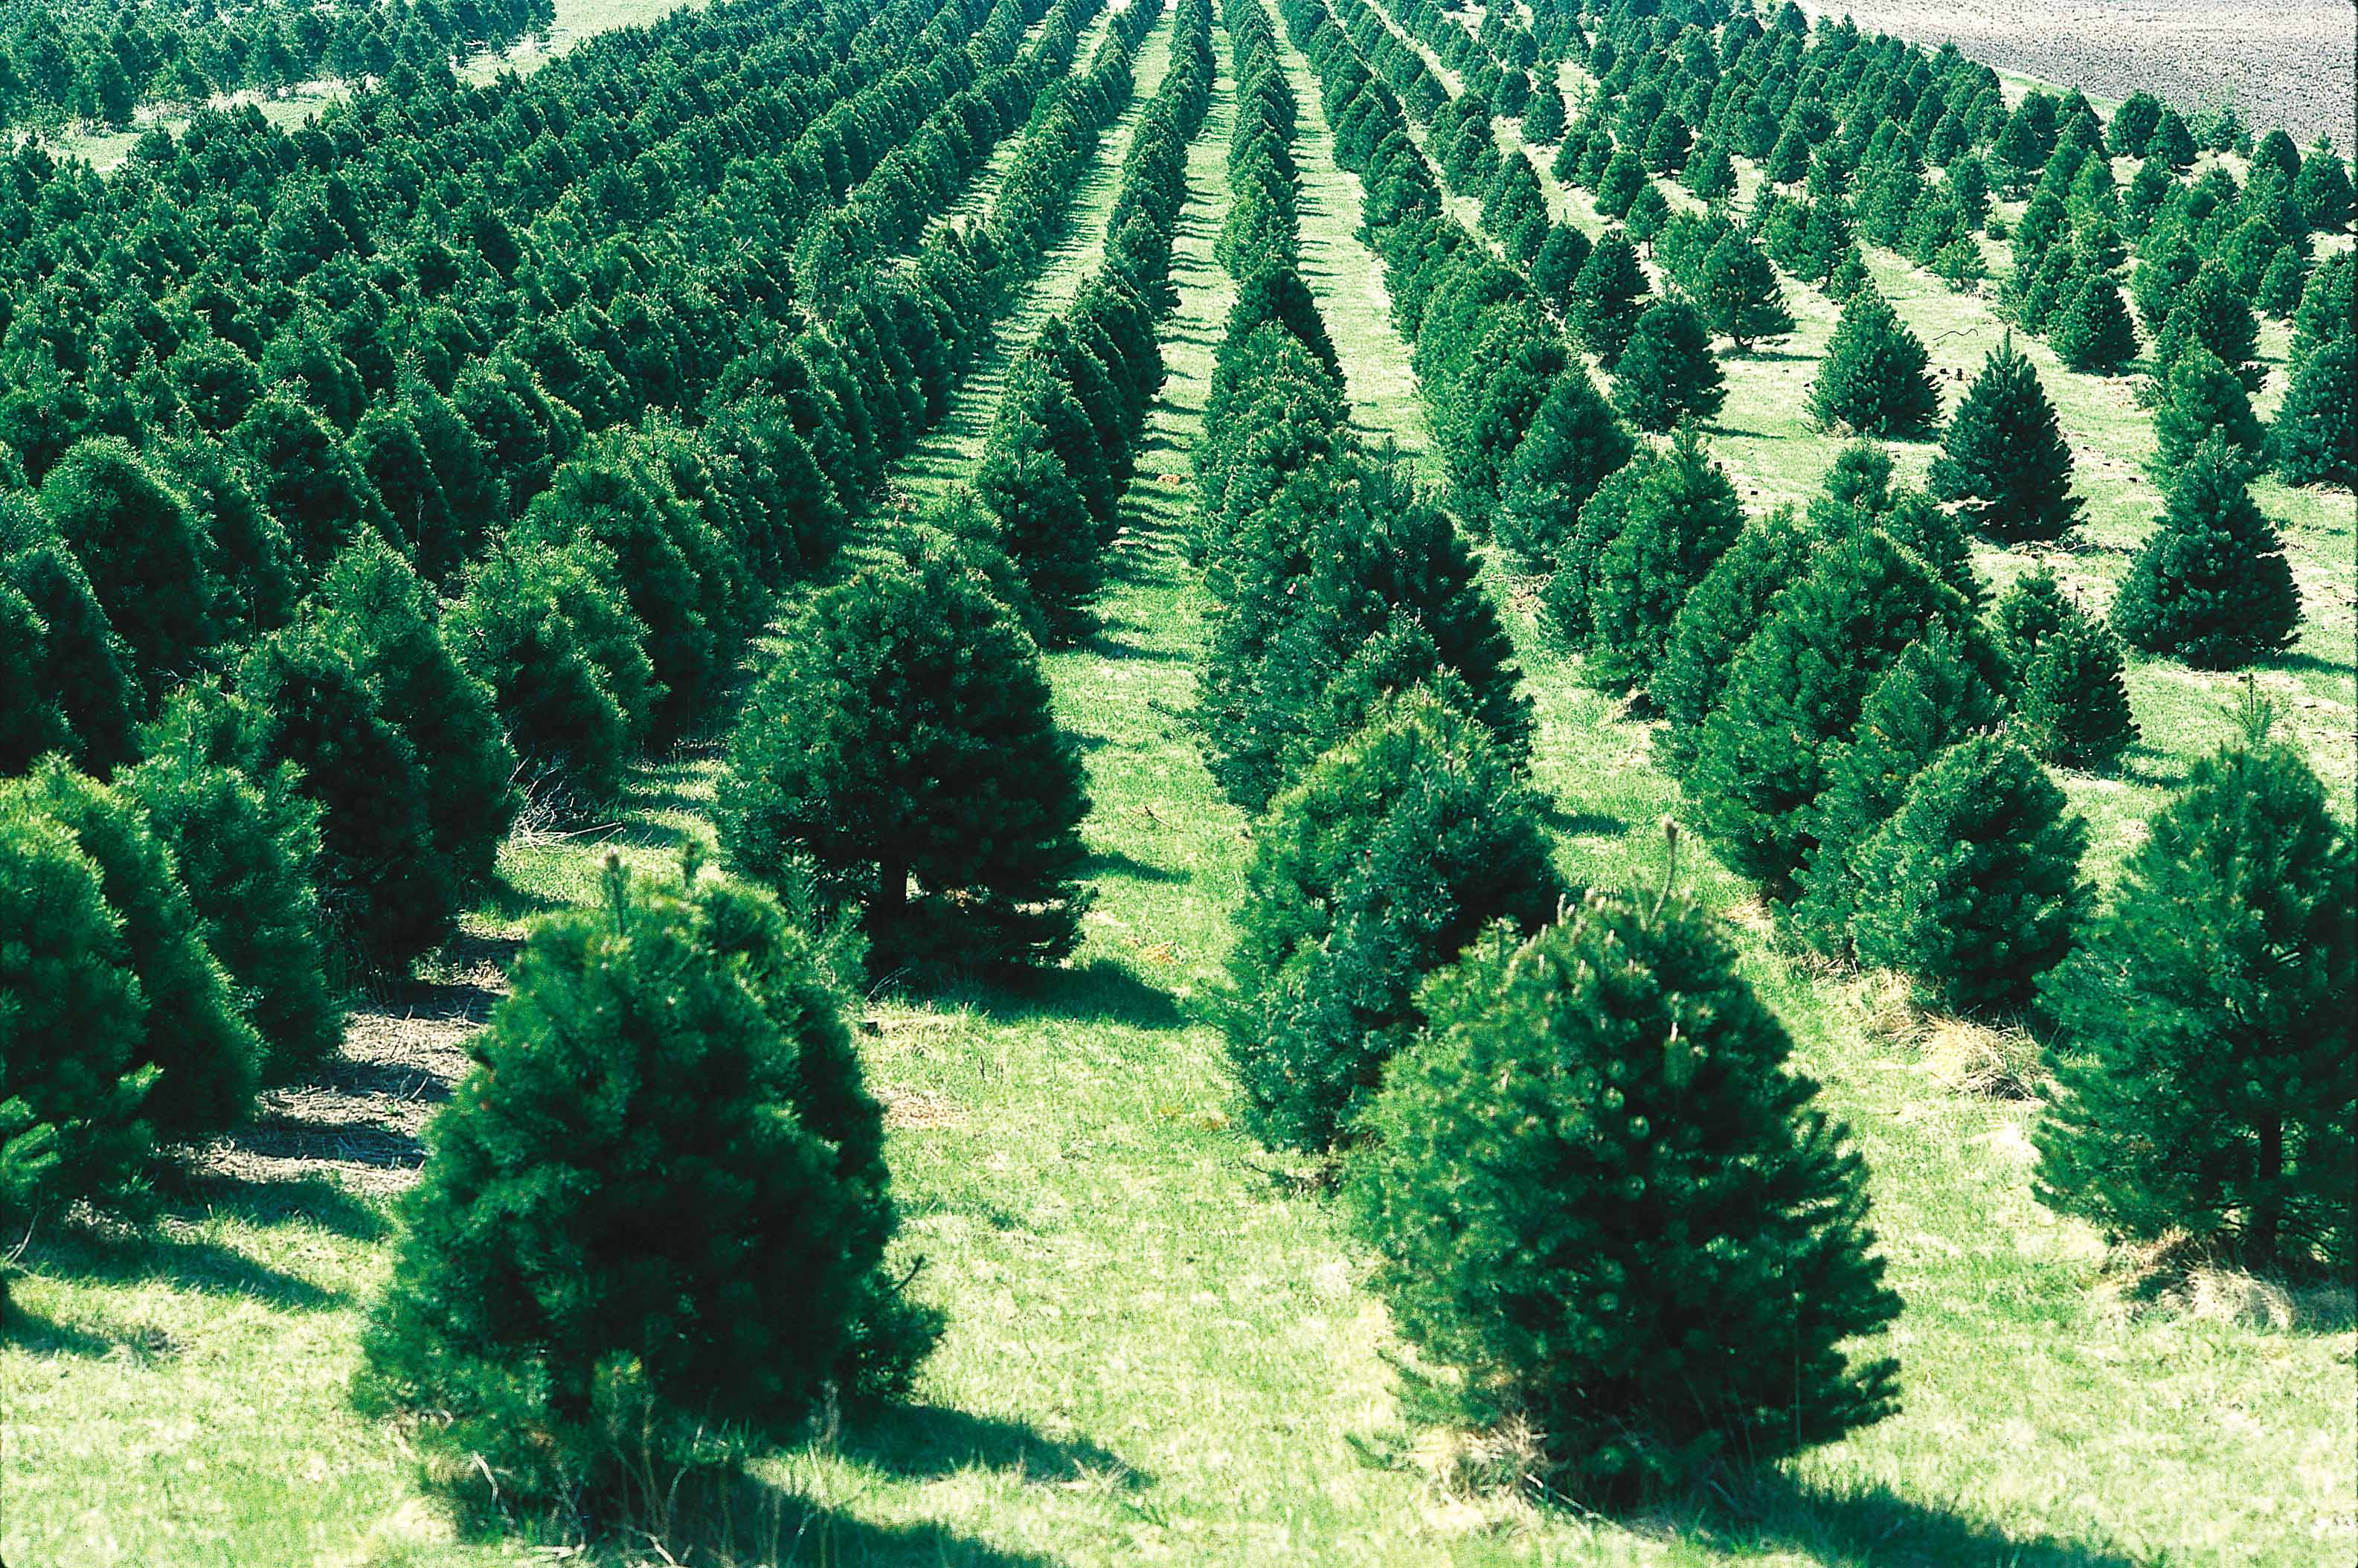 Christmas tree cultivation - Wikipedia